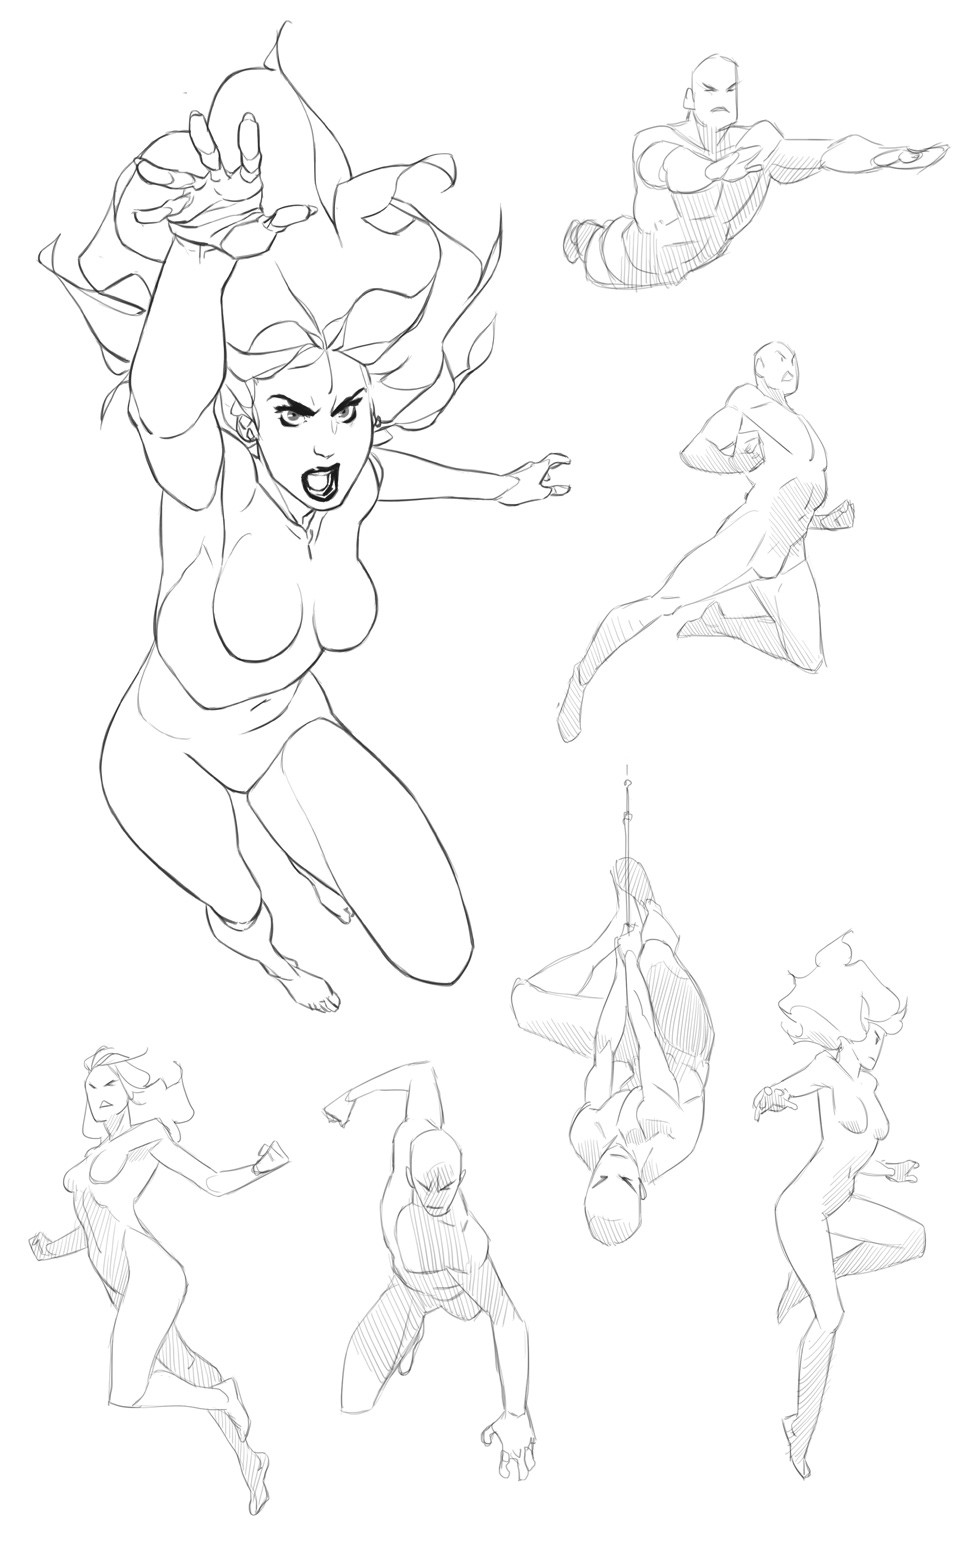 anatomy_in_action_new_poses.jpg